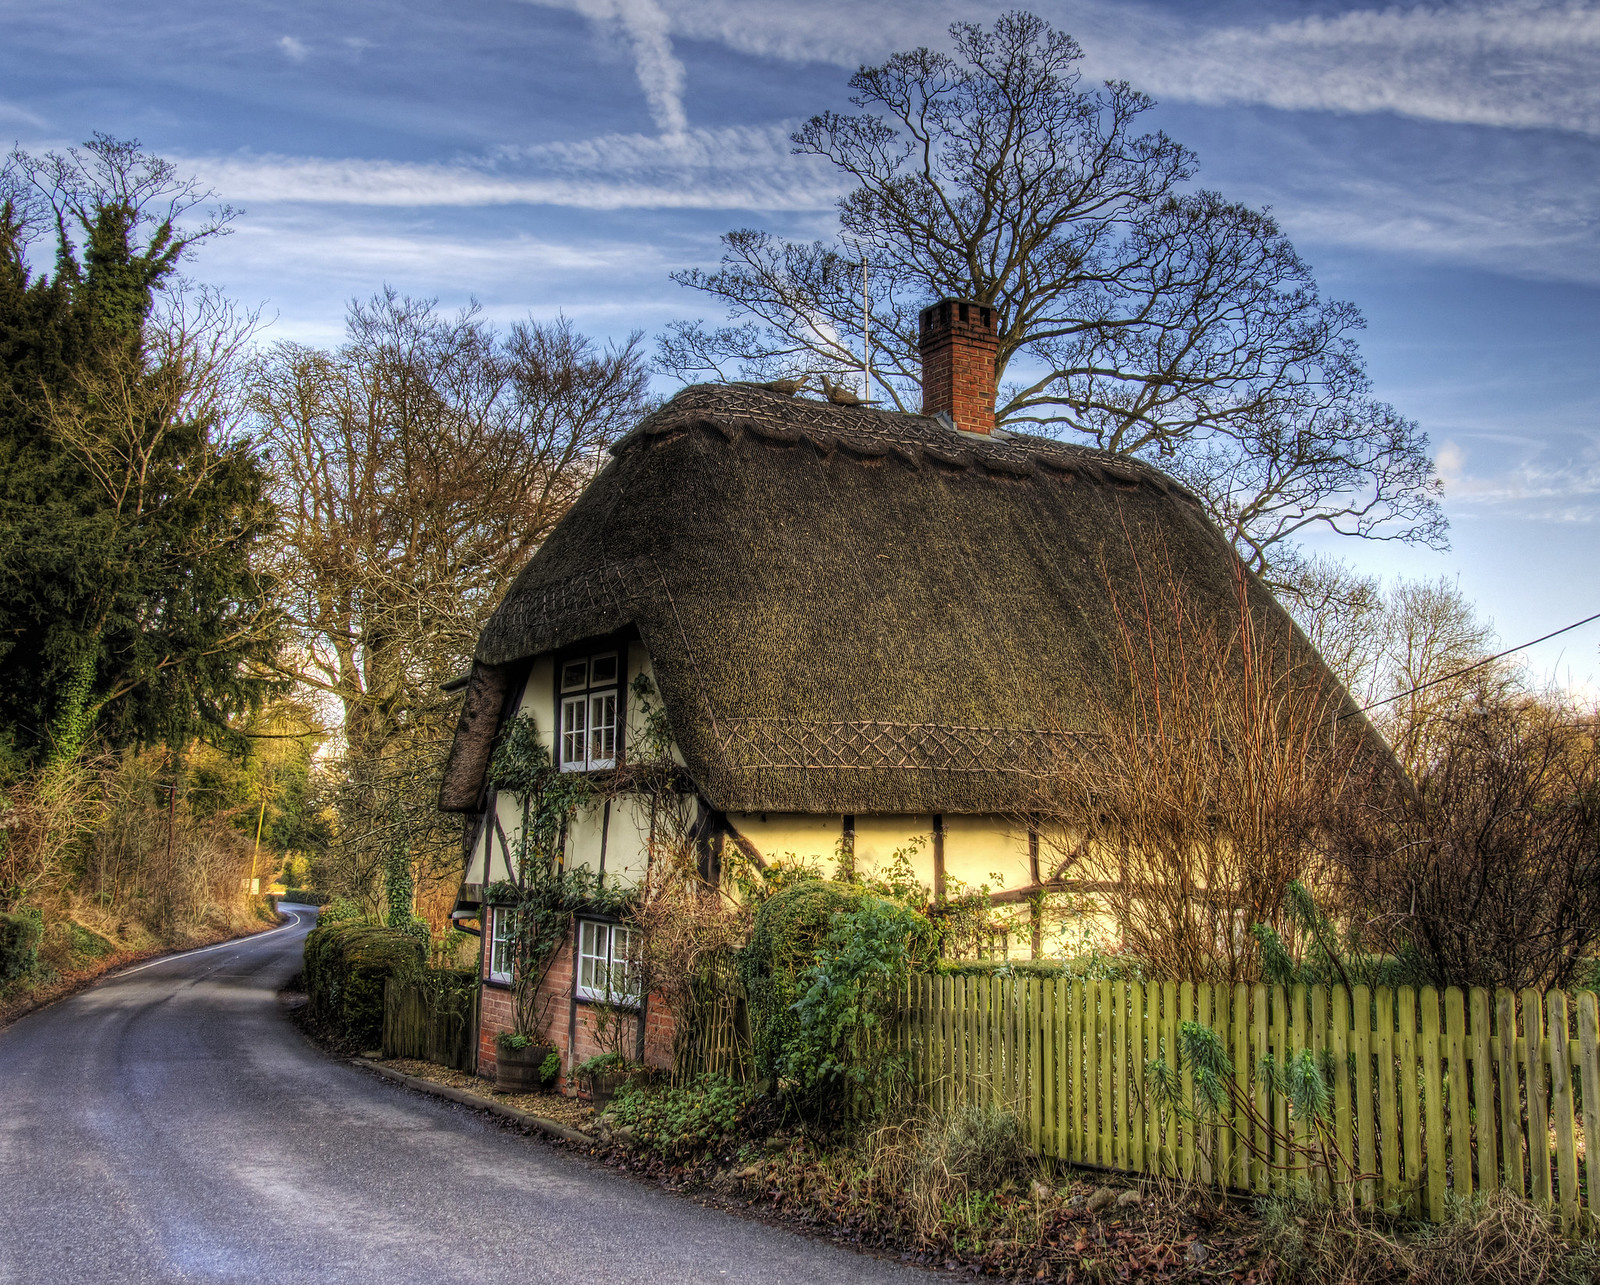 A thatched cottage at Wherwell in Hampshire. Credit Neil Howard